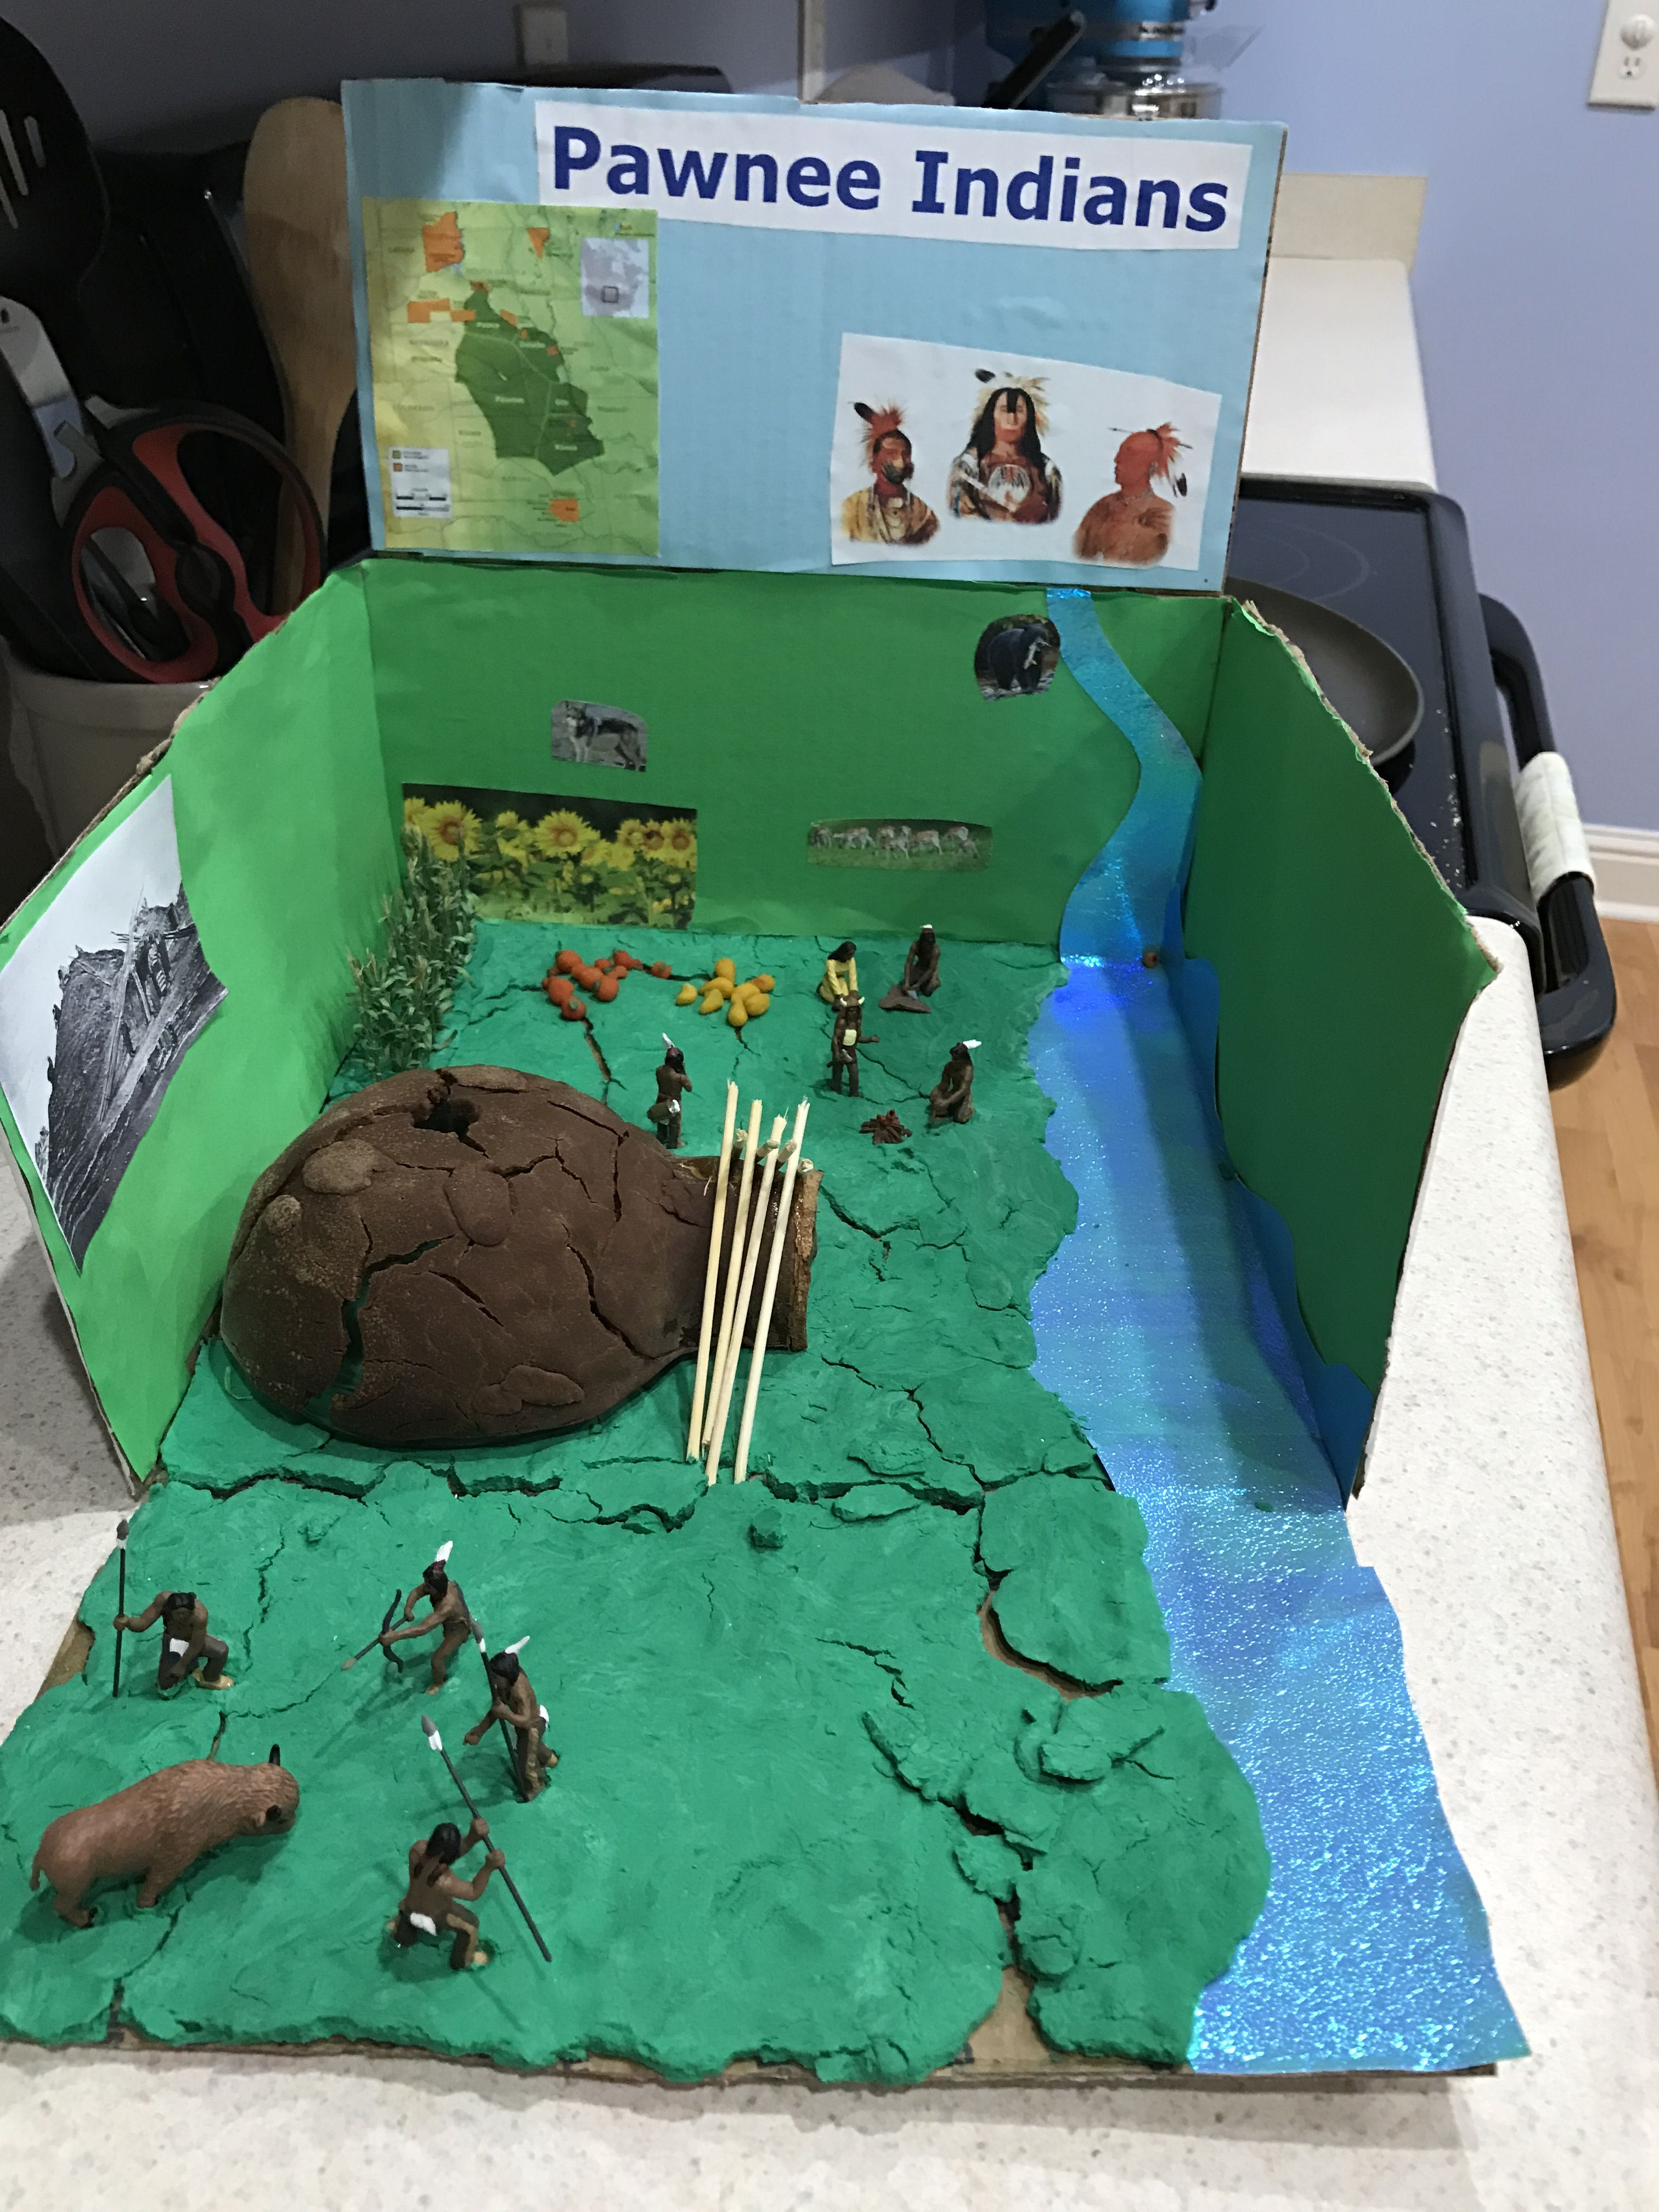 Peachy Pawnee Indians Diorama School Projects Indian Project Download Free Architecture Designs Embacsunscenecom